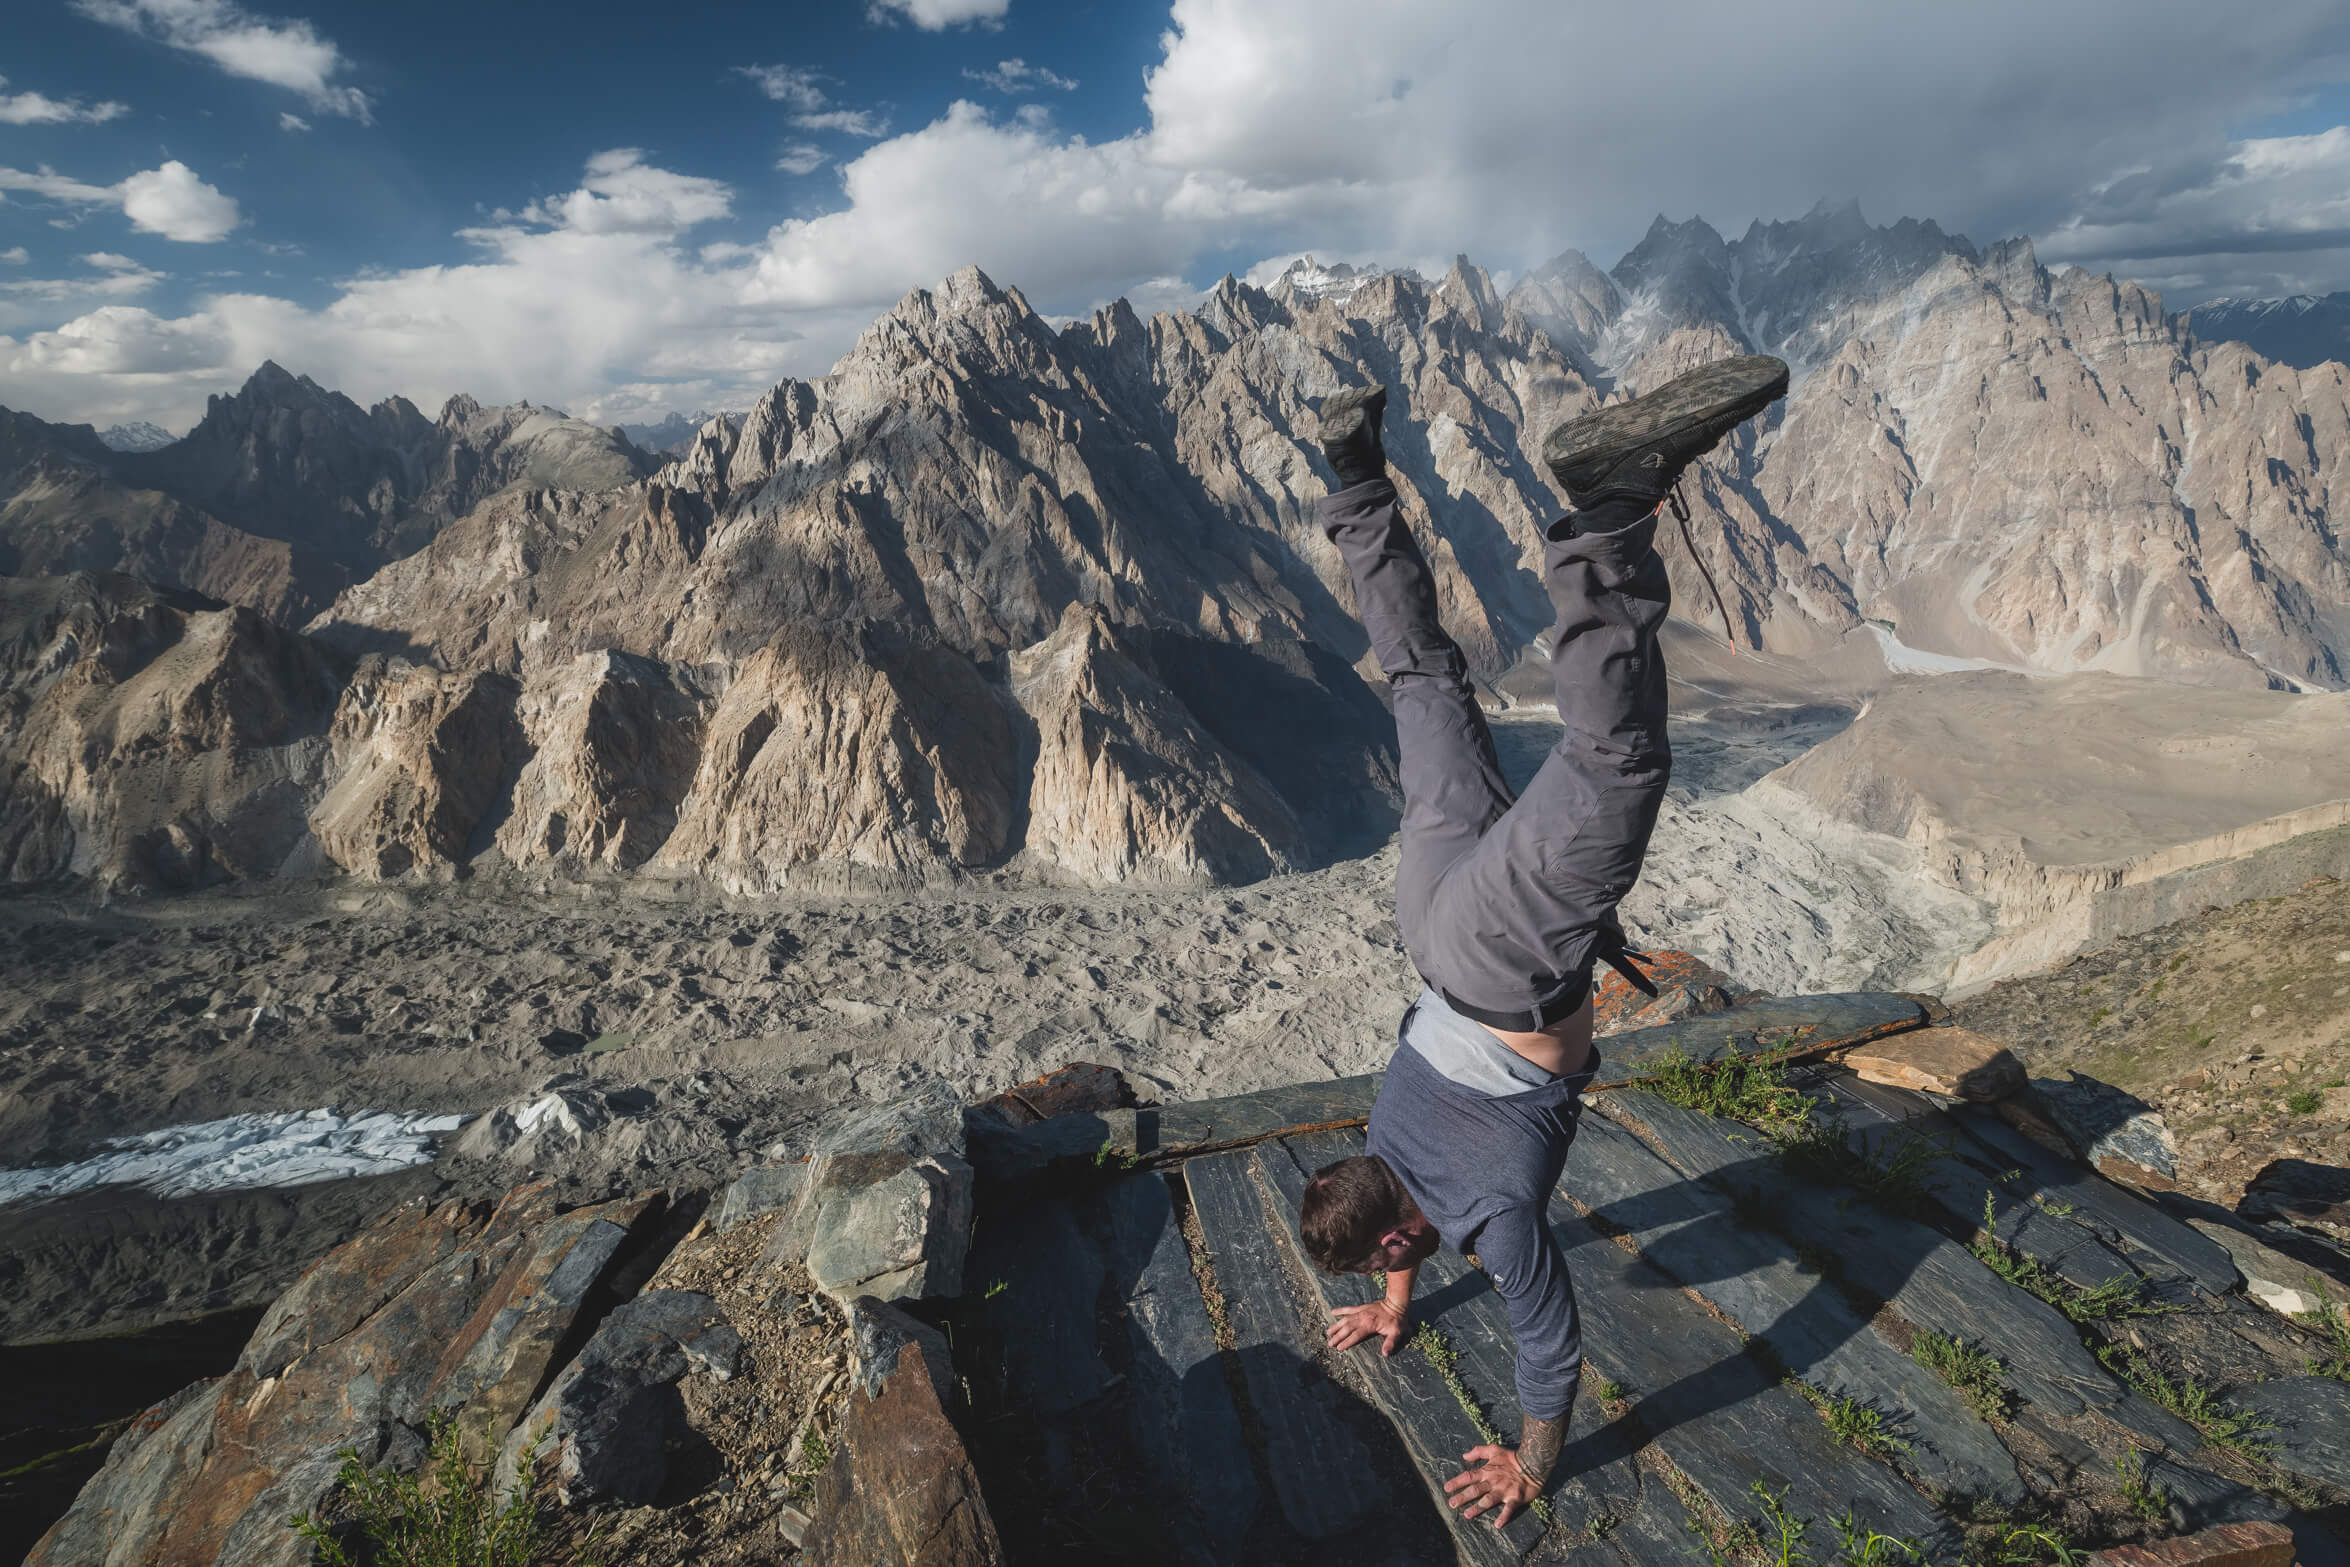 Will Hatton doing a handstand over the Passu Cones in northern Pakistan